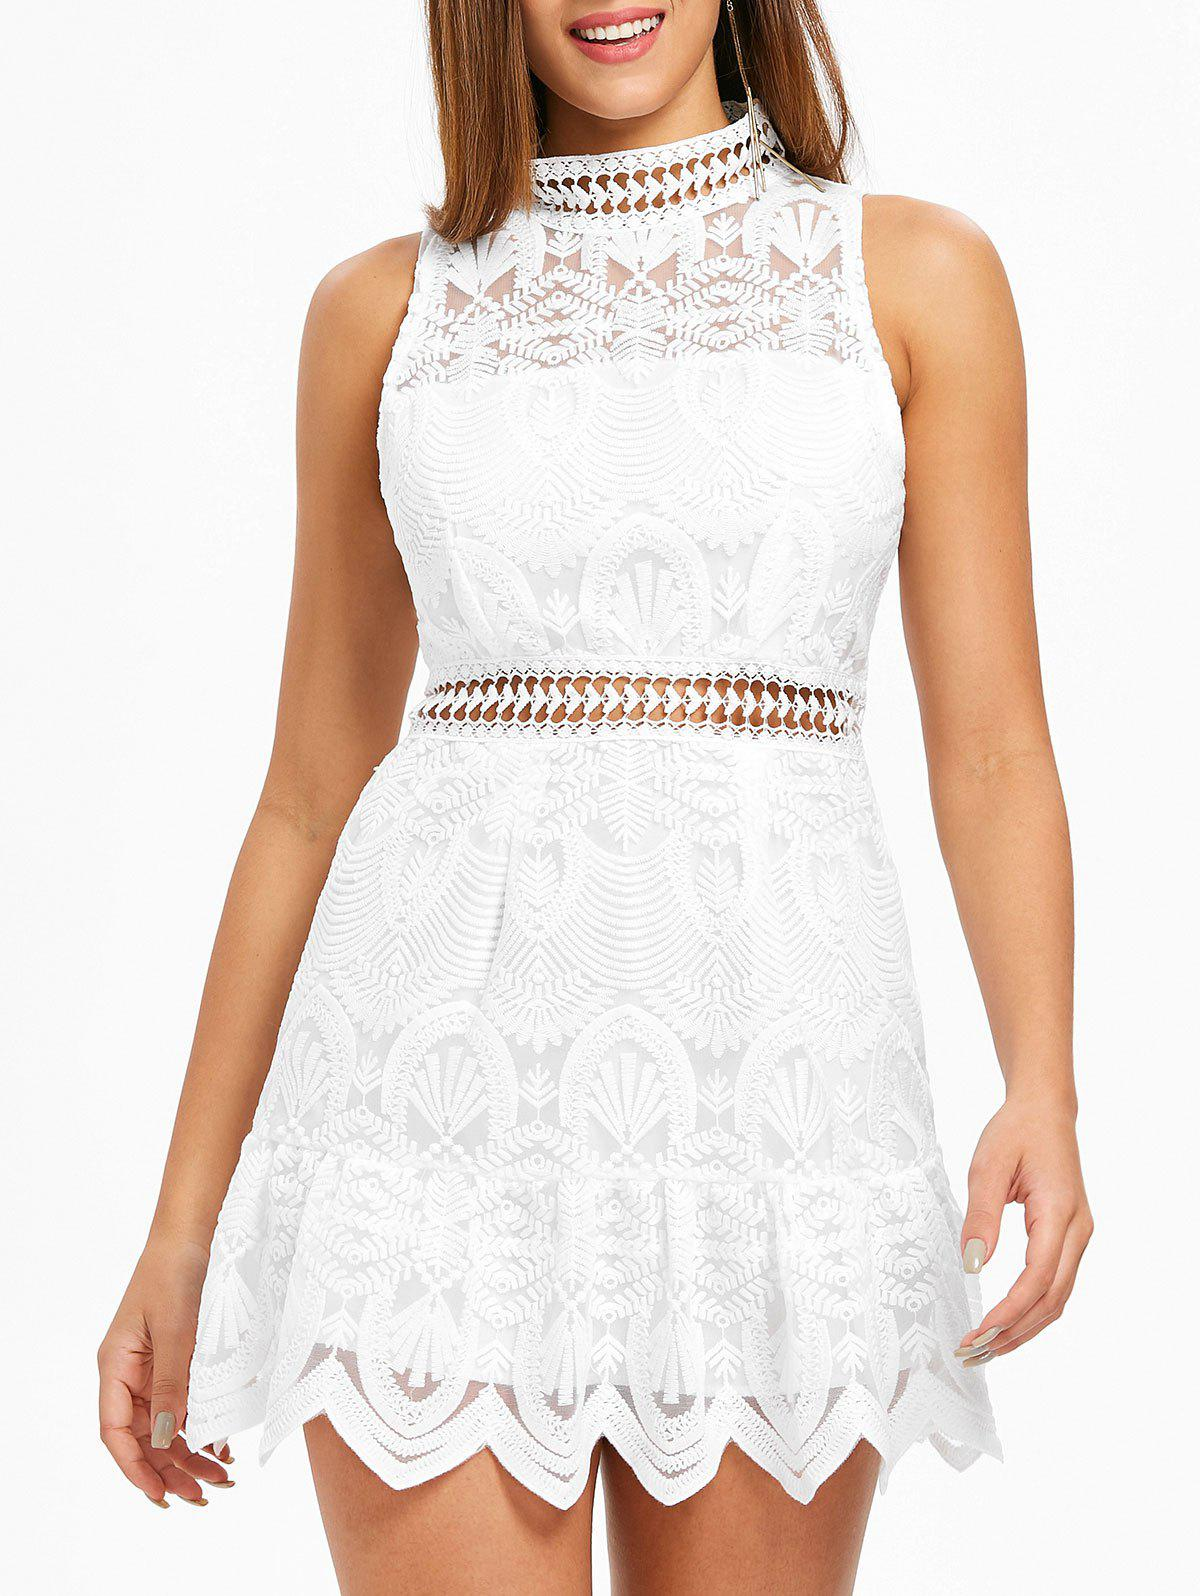 Fashion Ruffle Hemline Back Cut Out Lace Dress